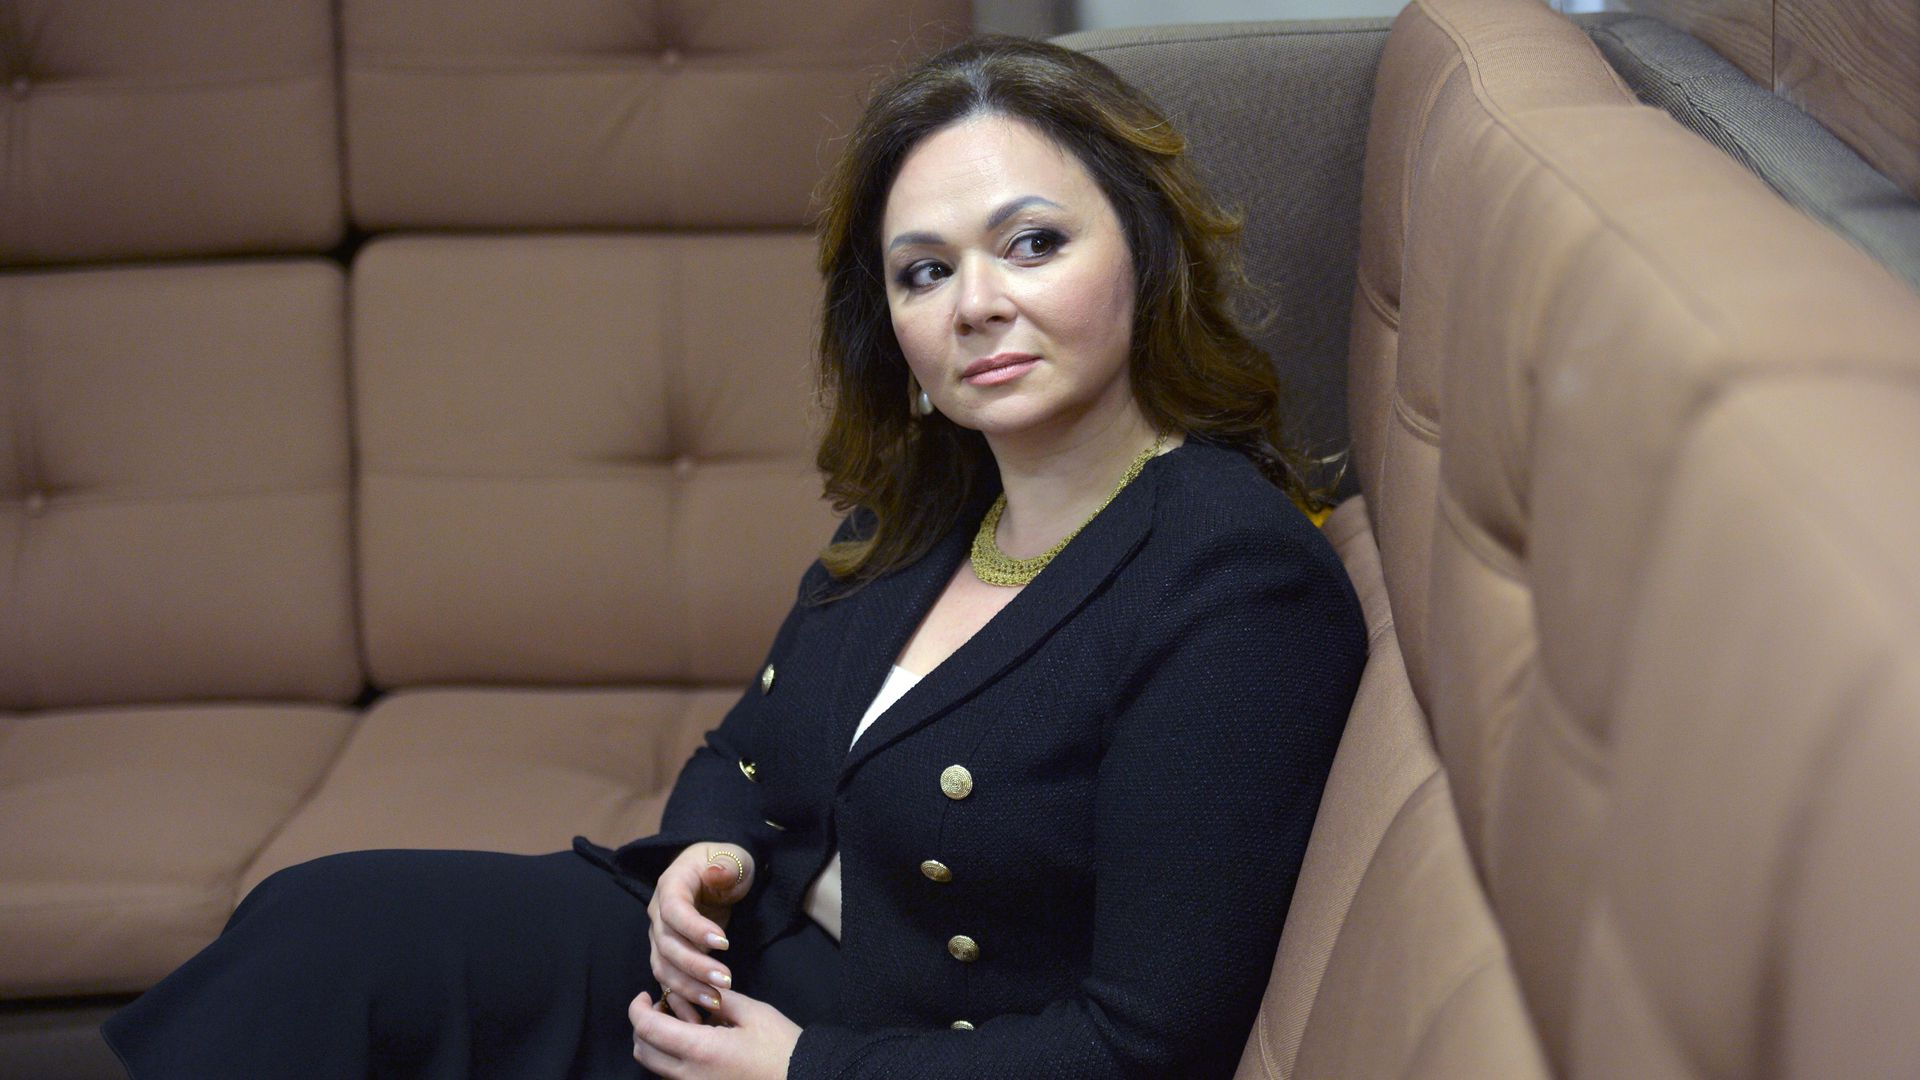 Russian lawyer Natalia Veselnitskaya sitting on a chair